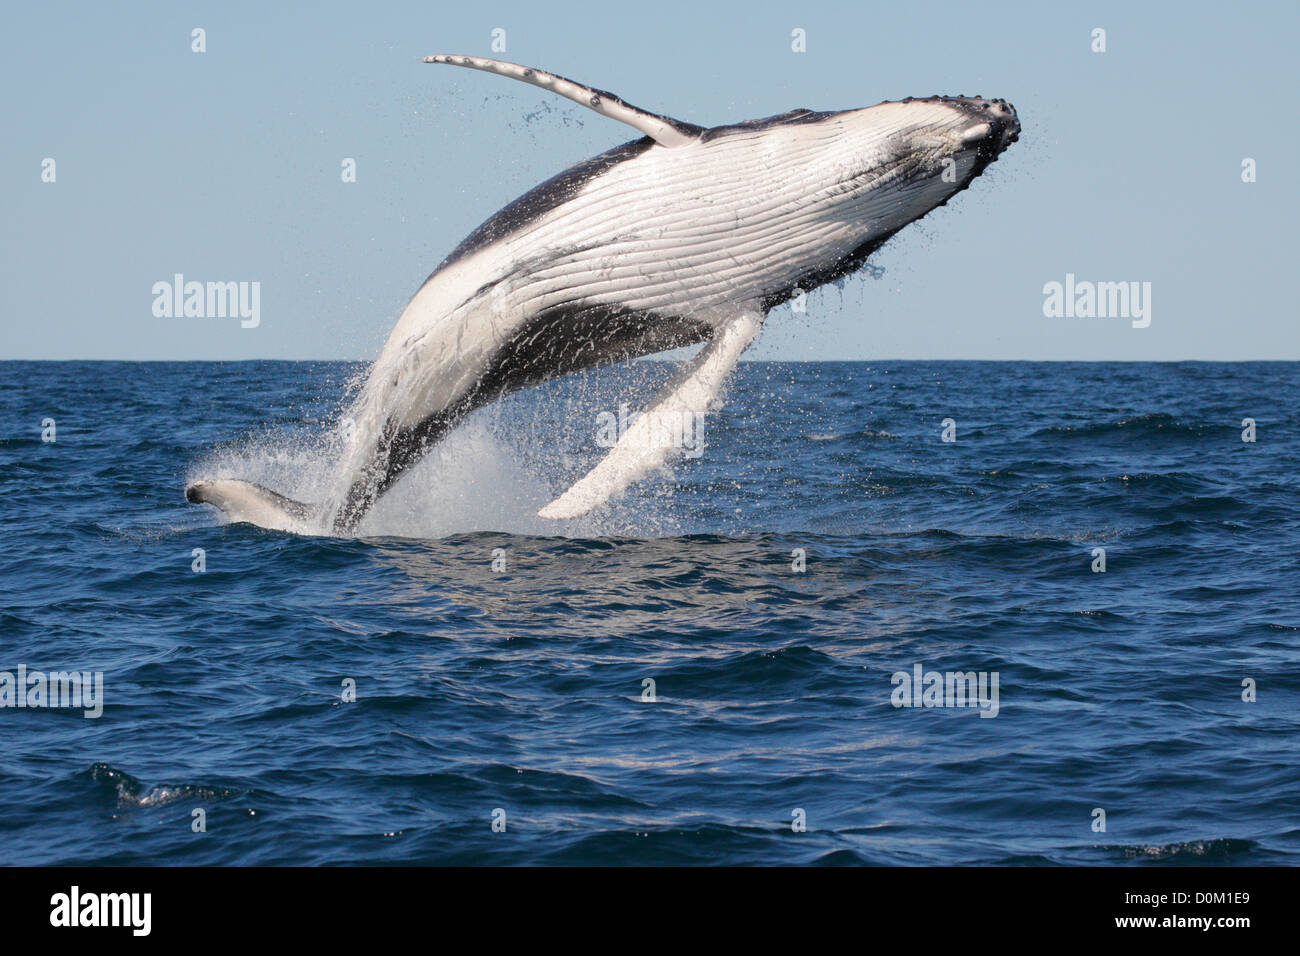 Young Humpback Whale (Megaptera novaeangliae) breaching, leaping in Byron Bay, New South Whales, Australia - Stock Image